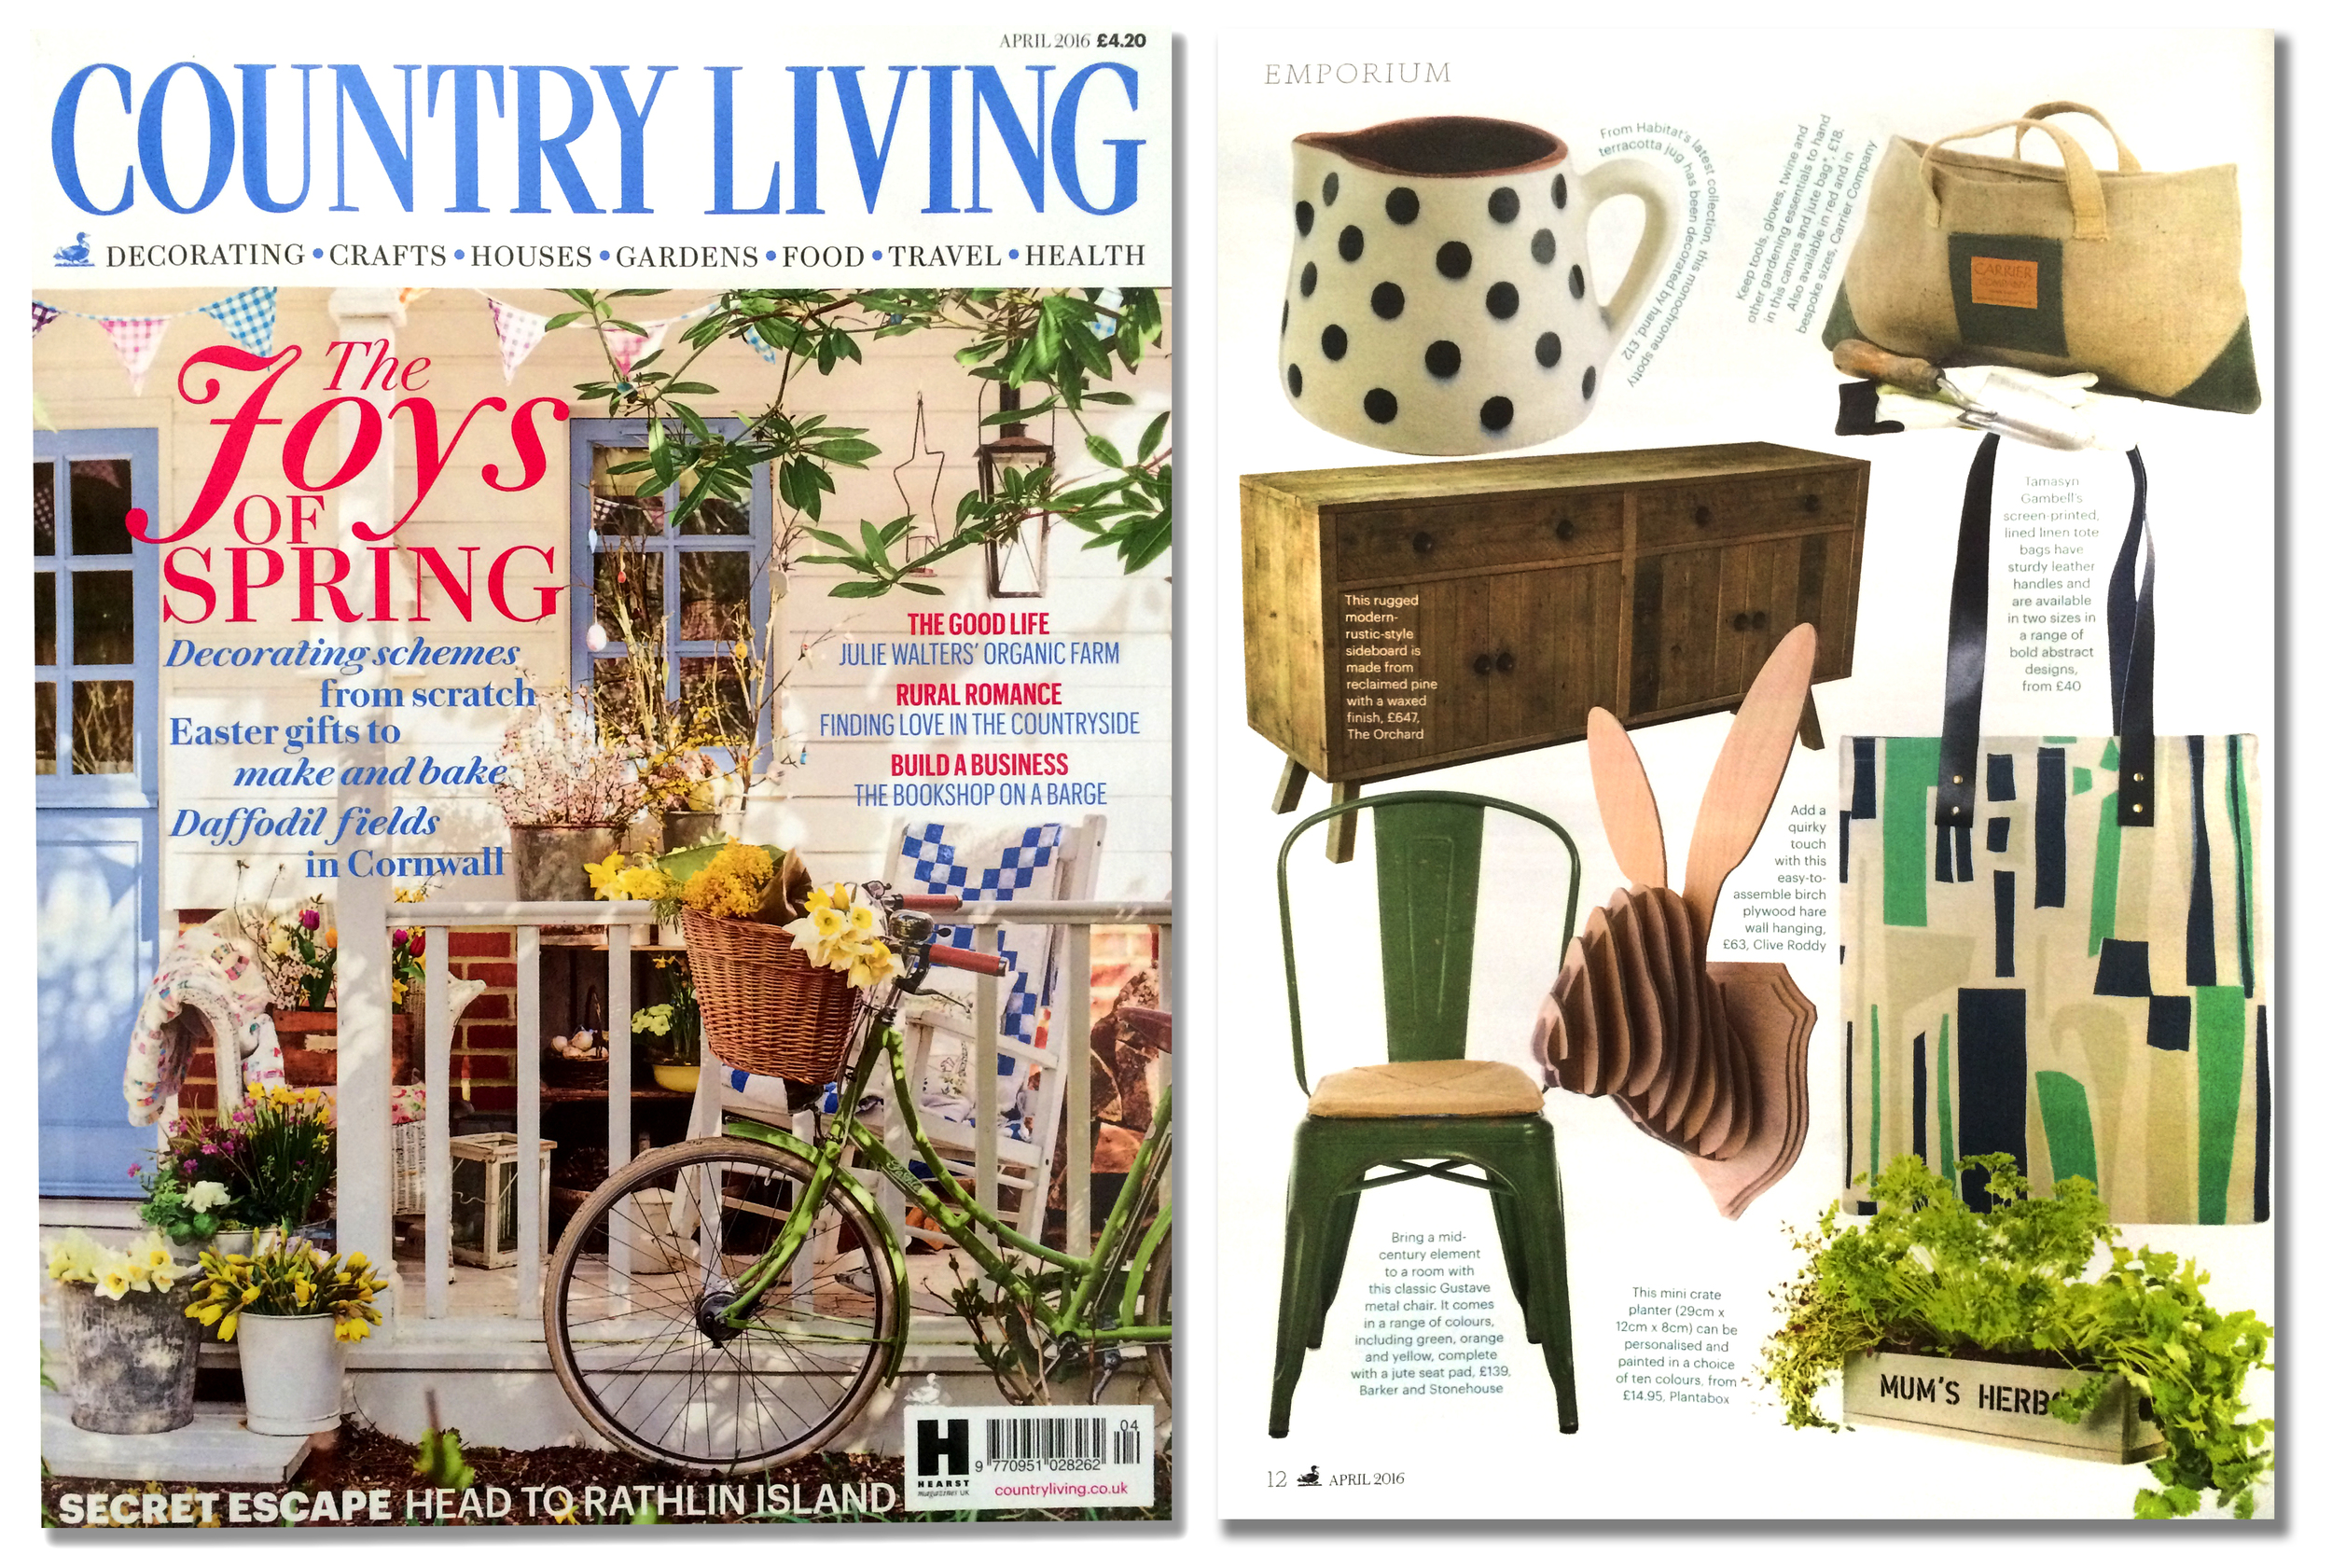 'Hare Trophy' featured in the April edition of  'Country Living' magazine. Published in March 2016. UK.